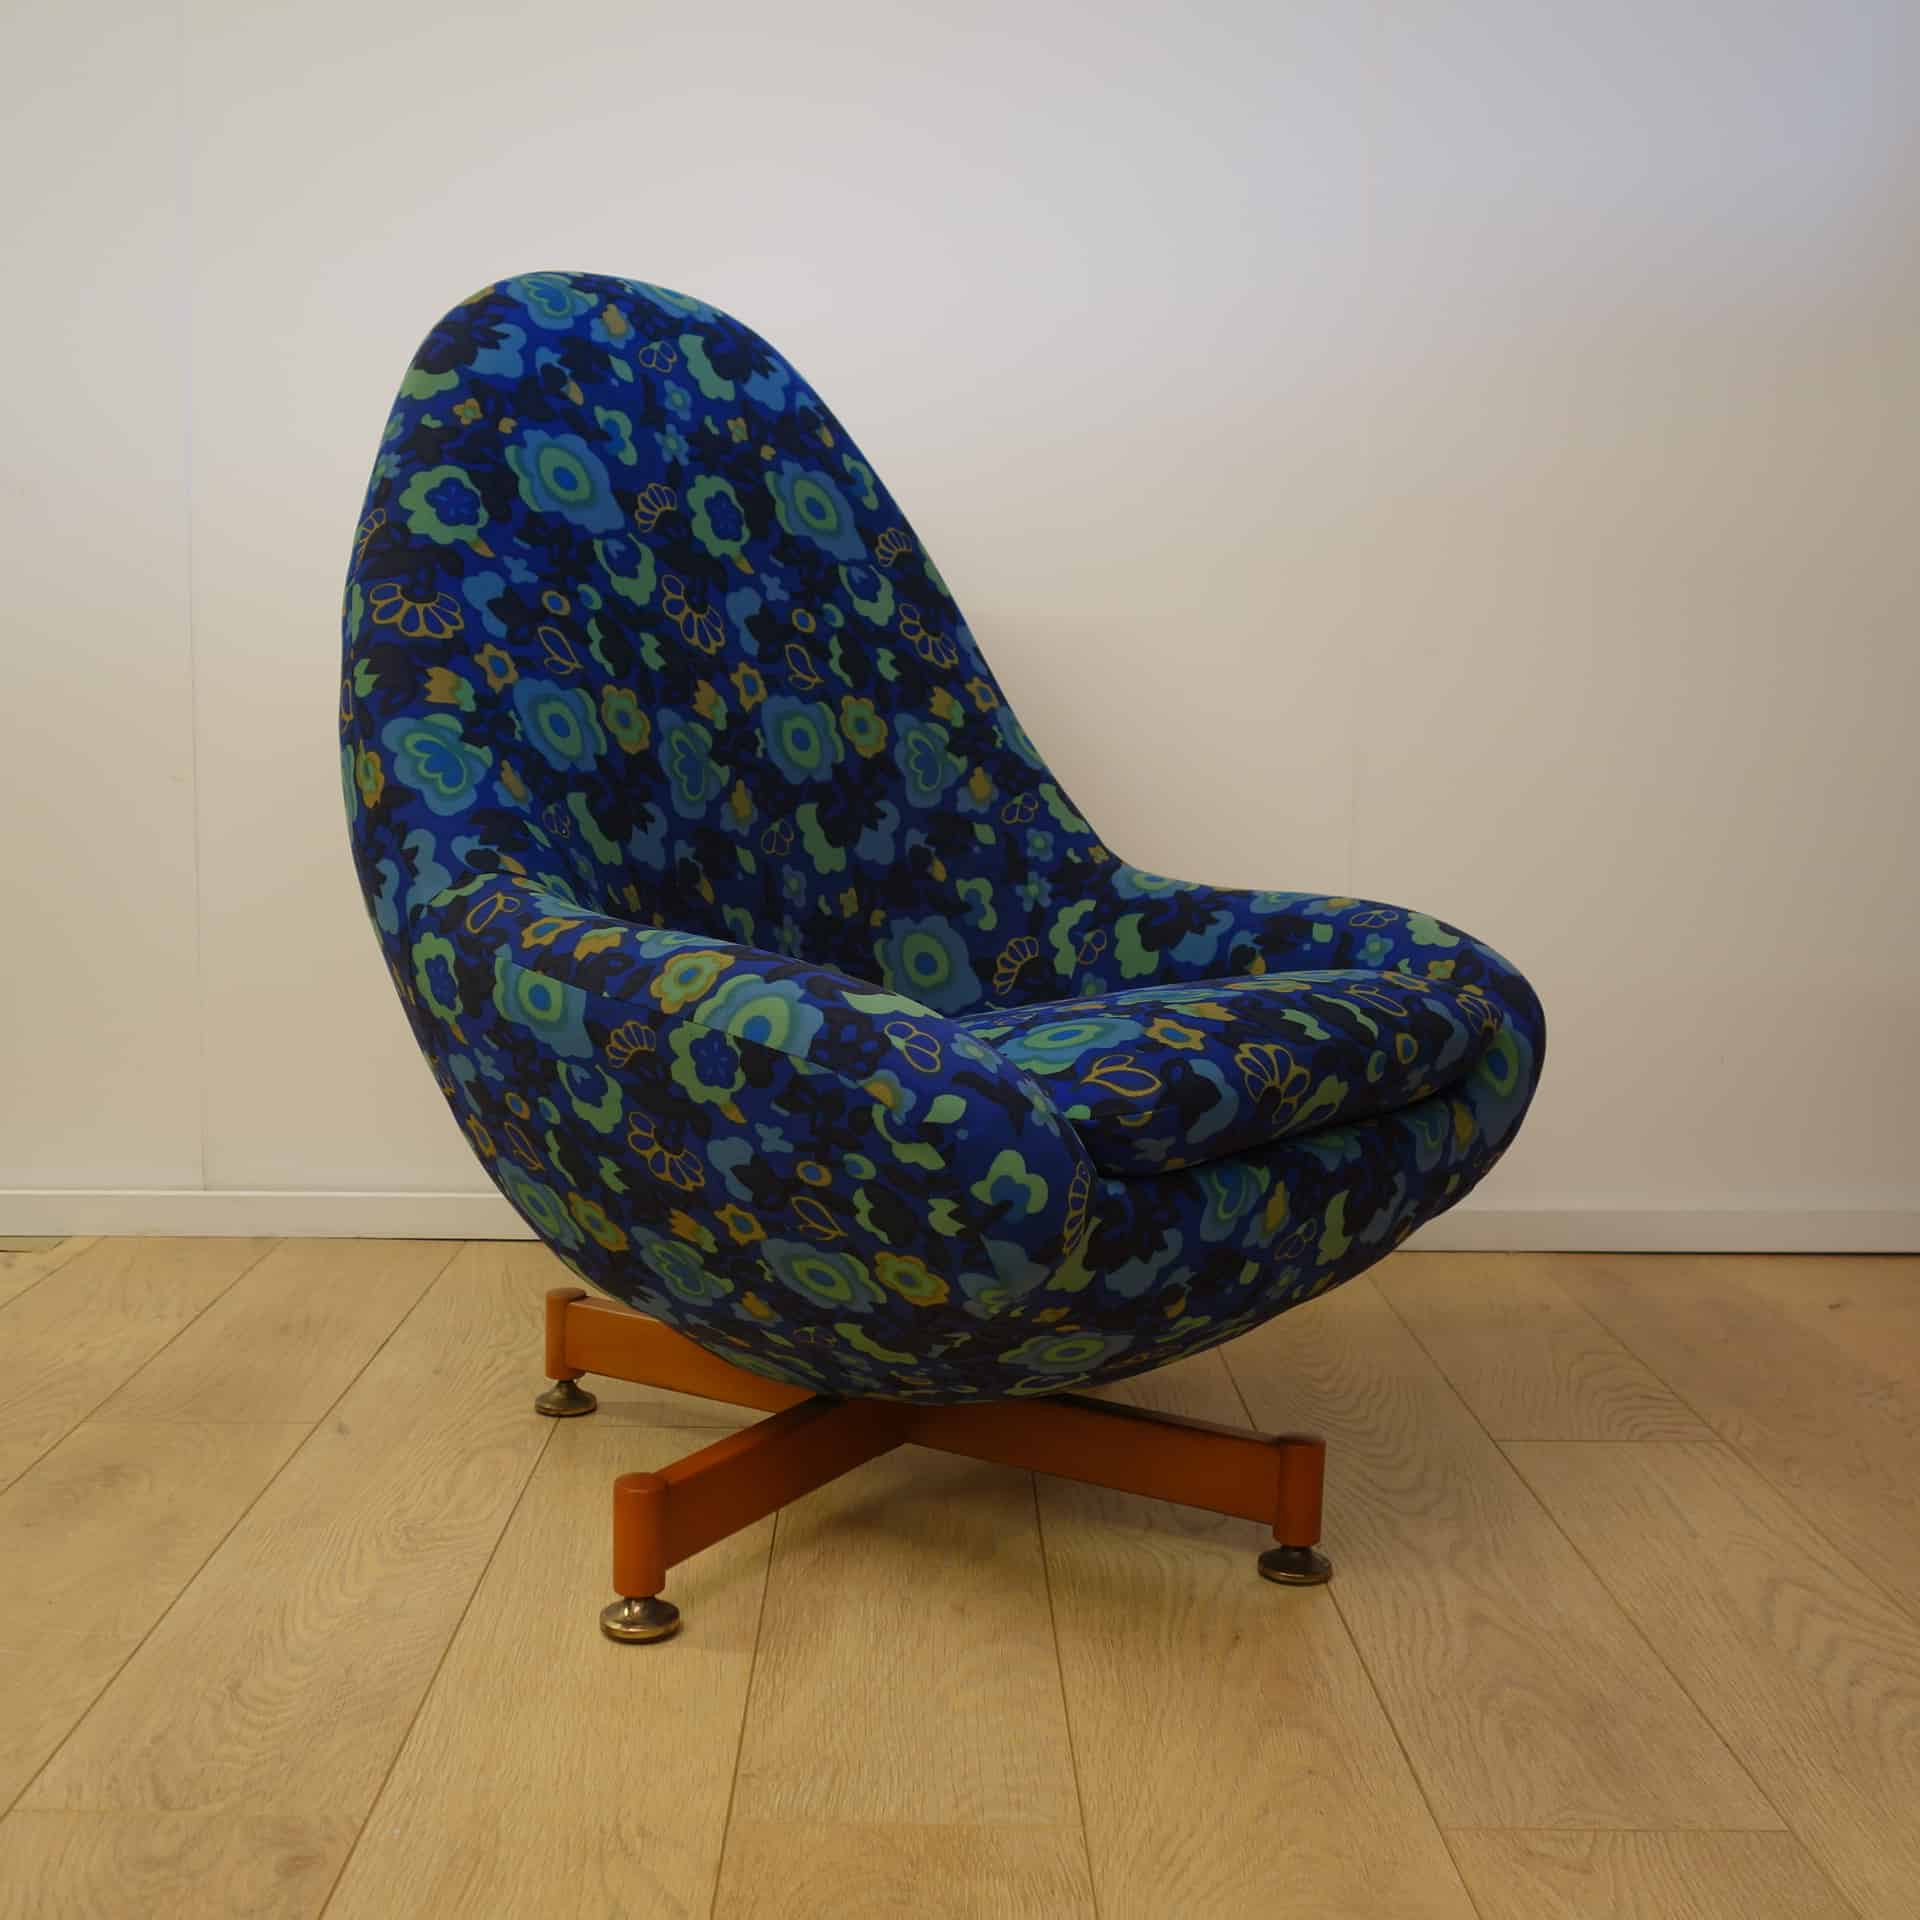 1960s Greaves and Thomas egg chair